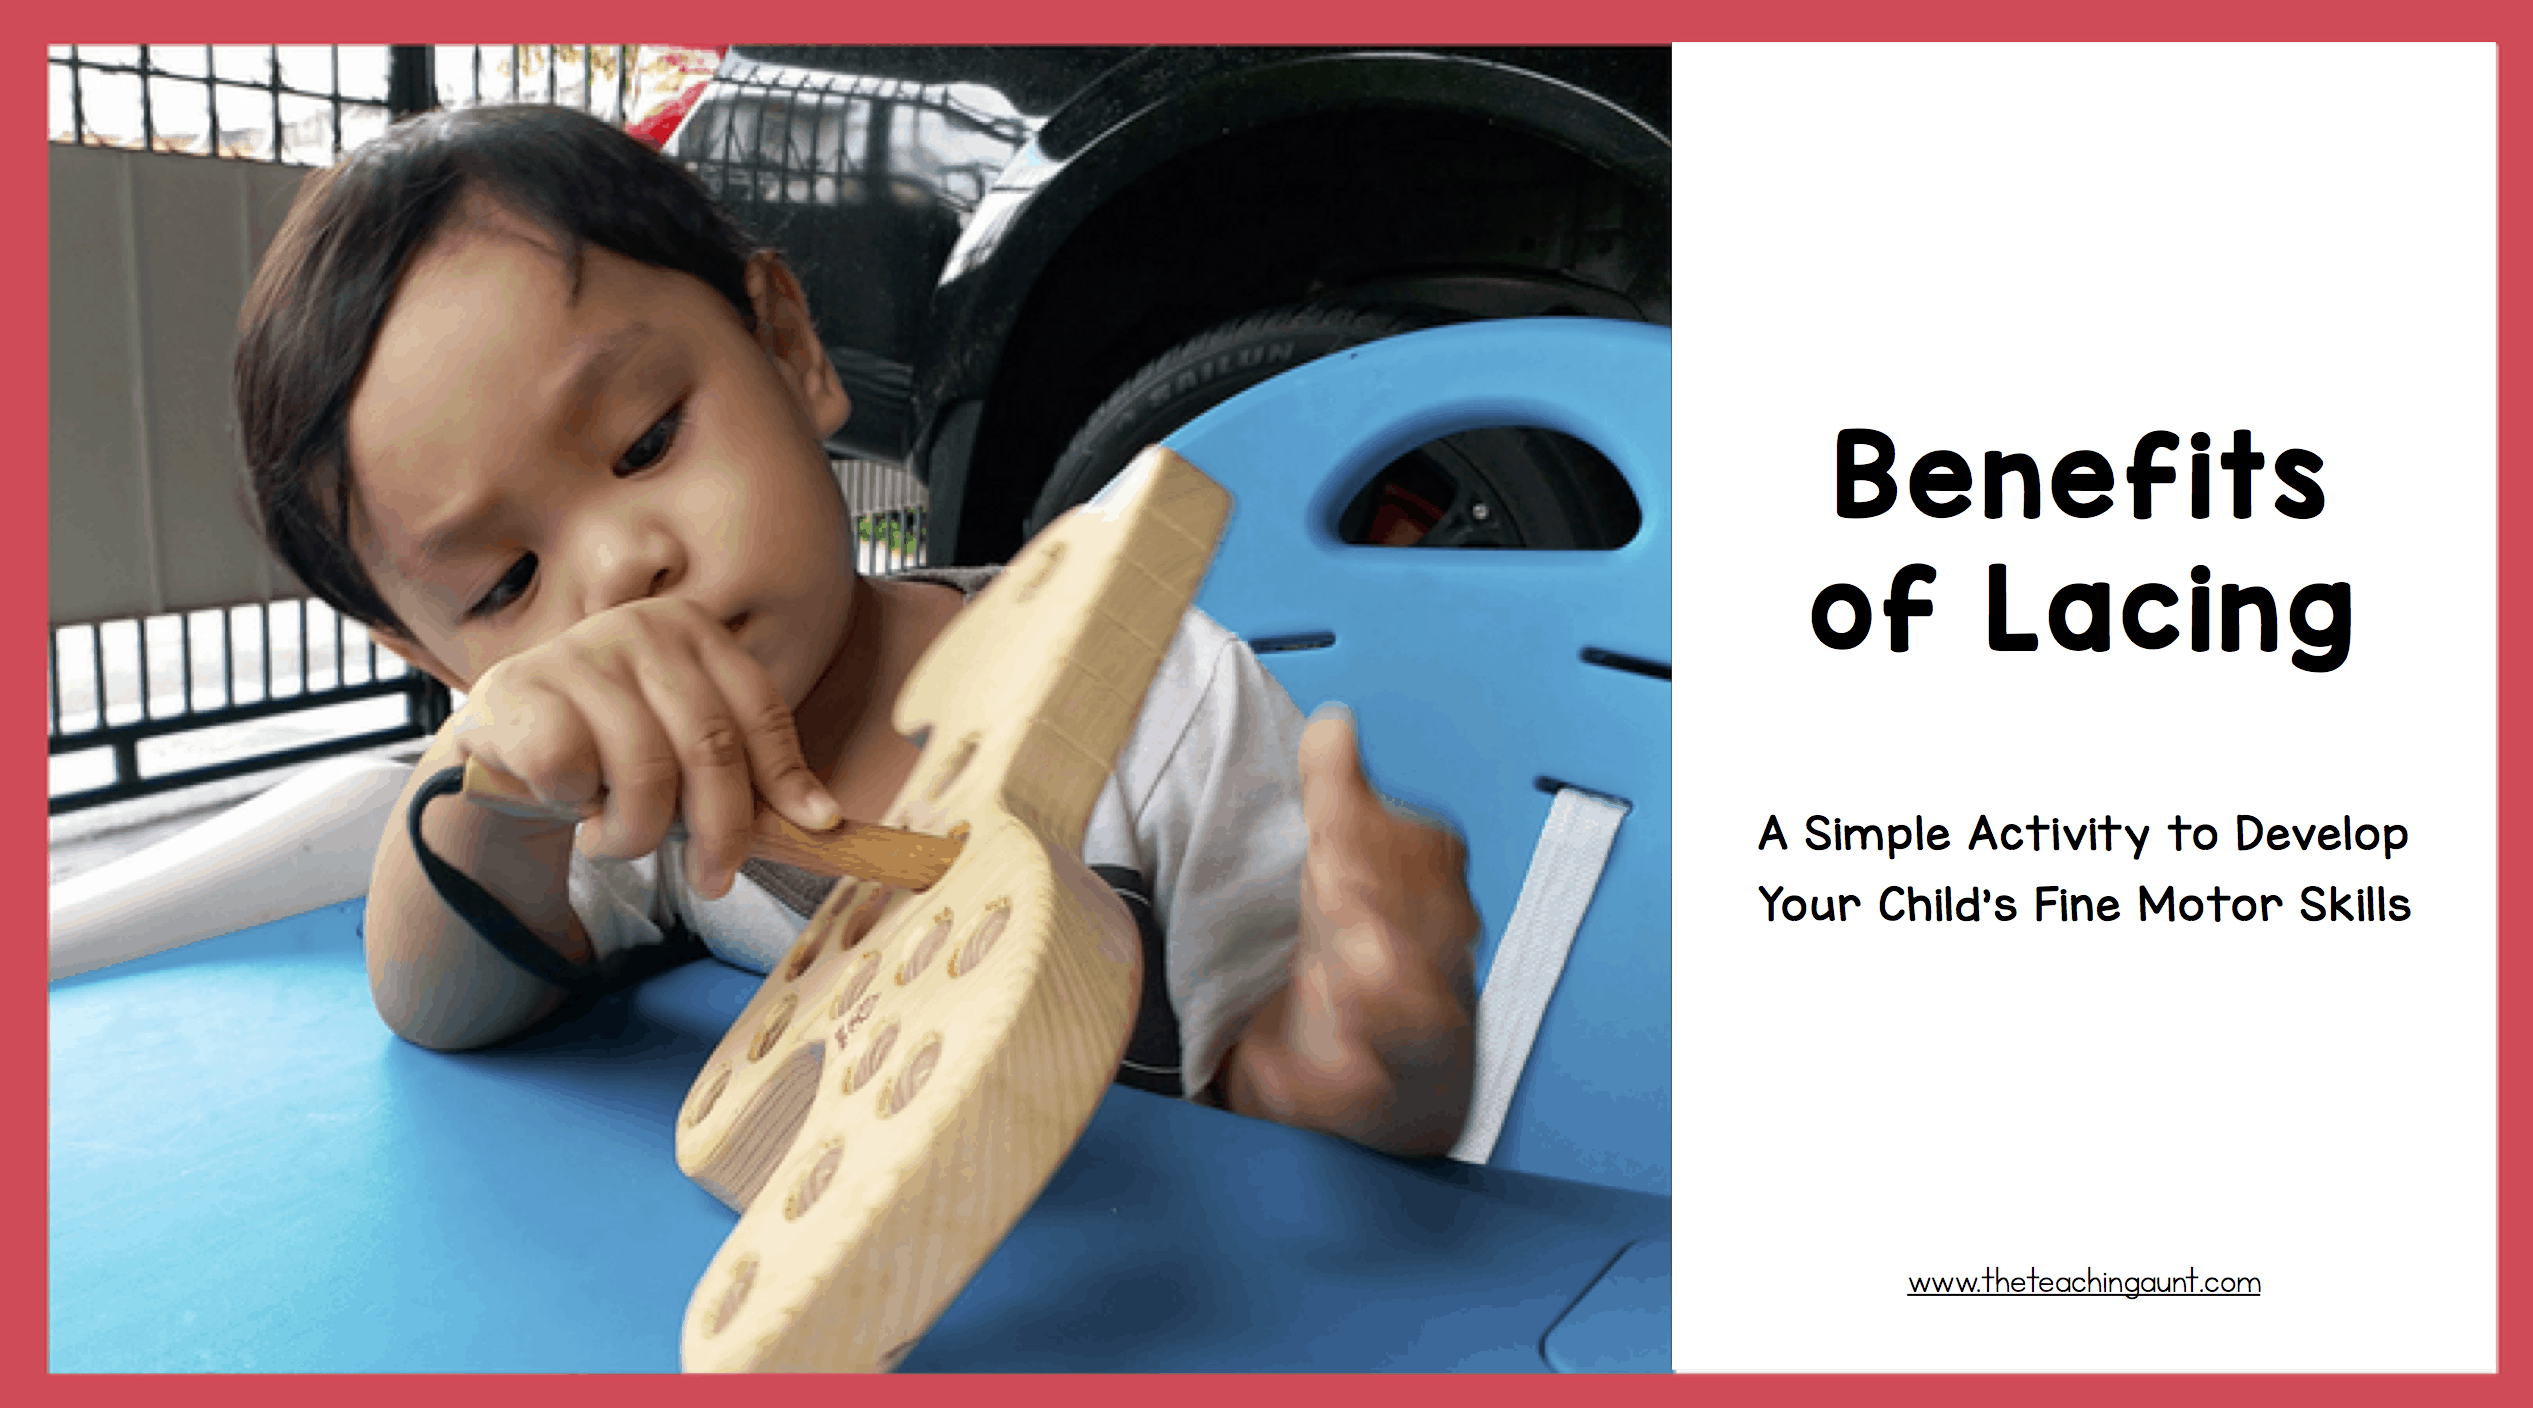 Benefits of Lacing: A Simple Activity To Strengthen Your Child's Fine Motor Skills